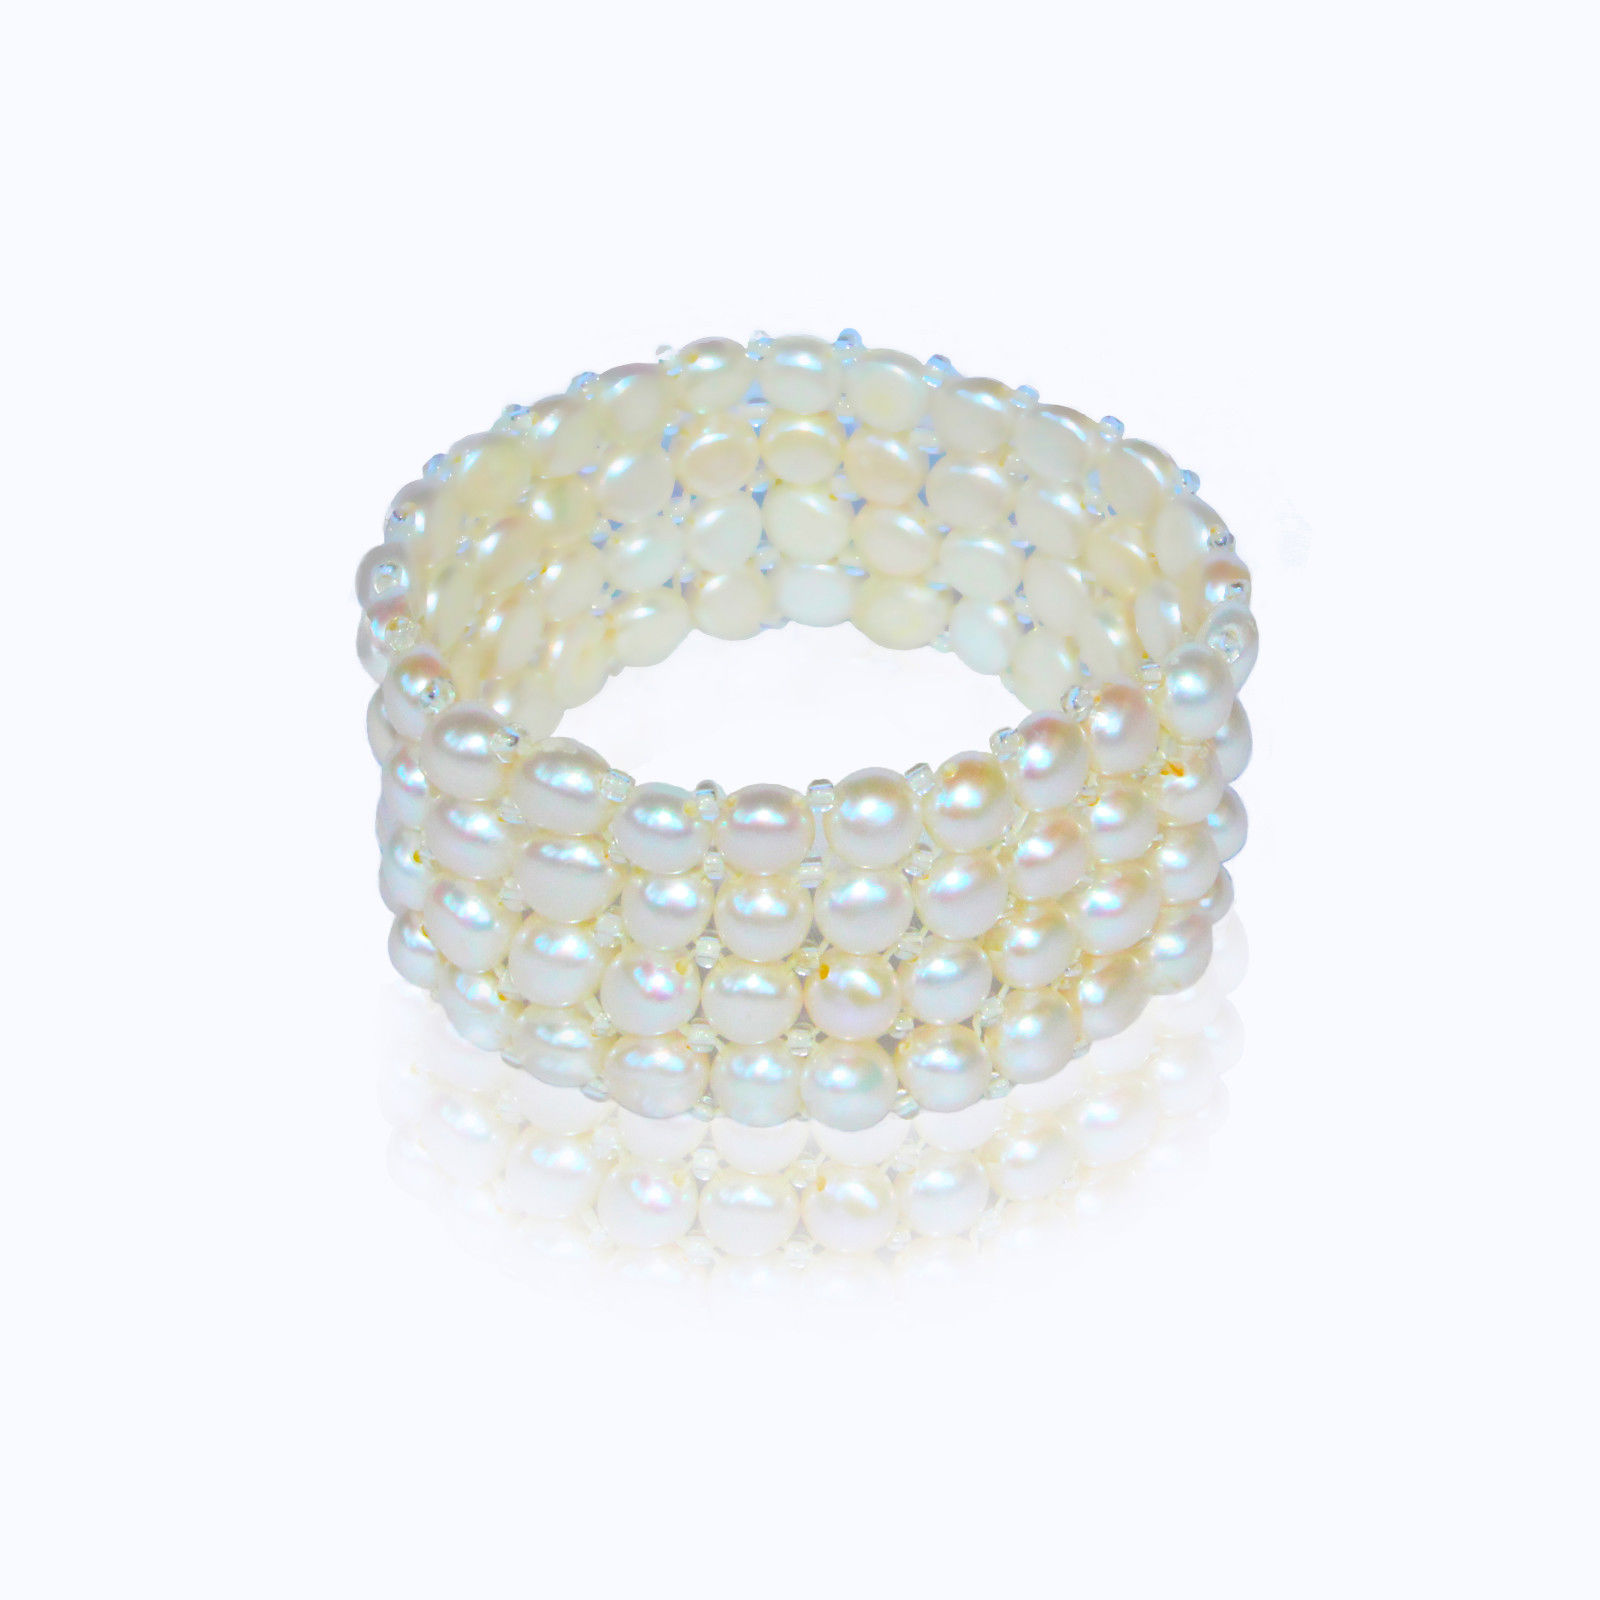 Freshwater Cultured Pearls, Expandable Bracelet